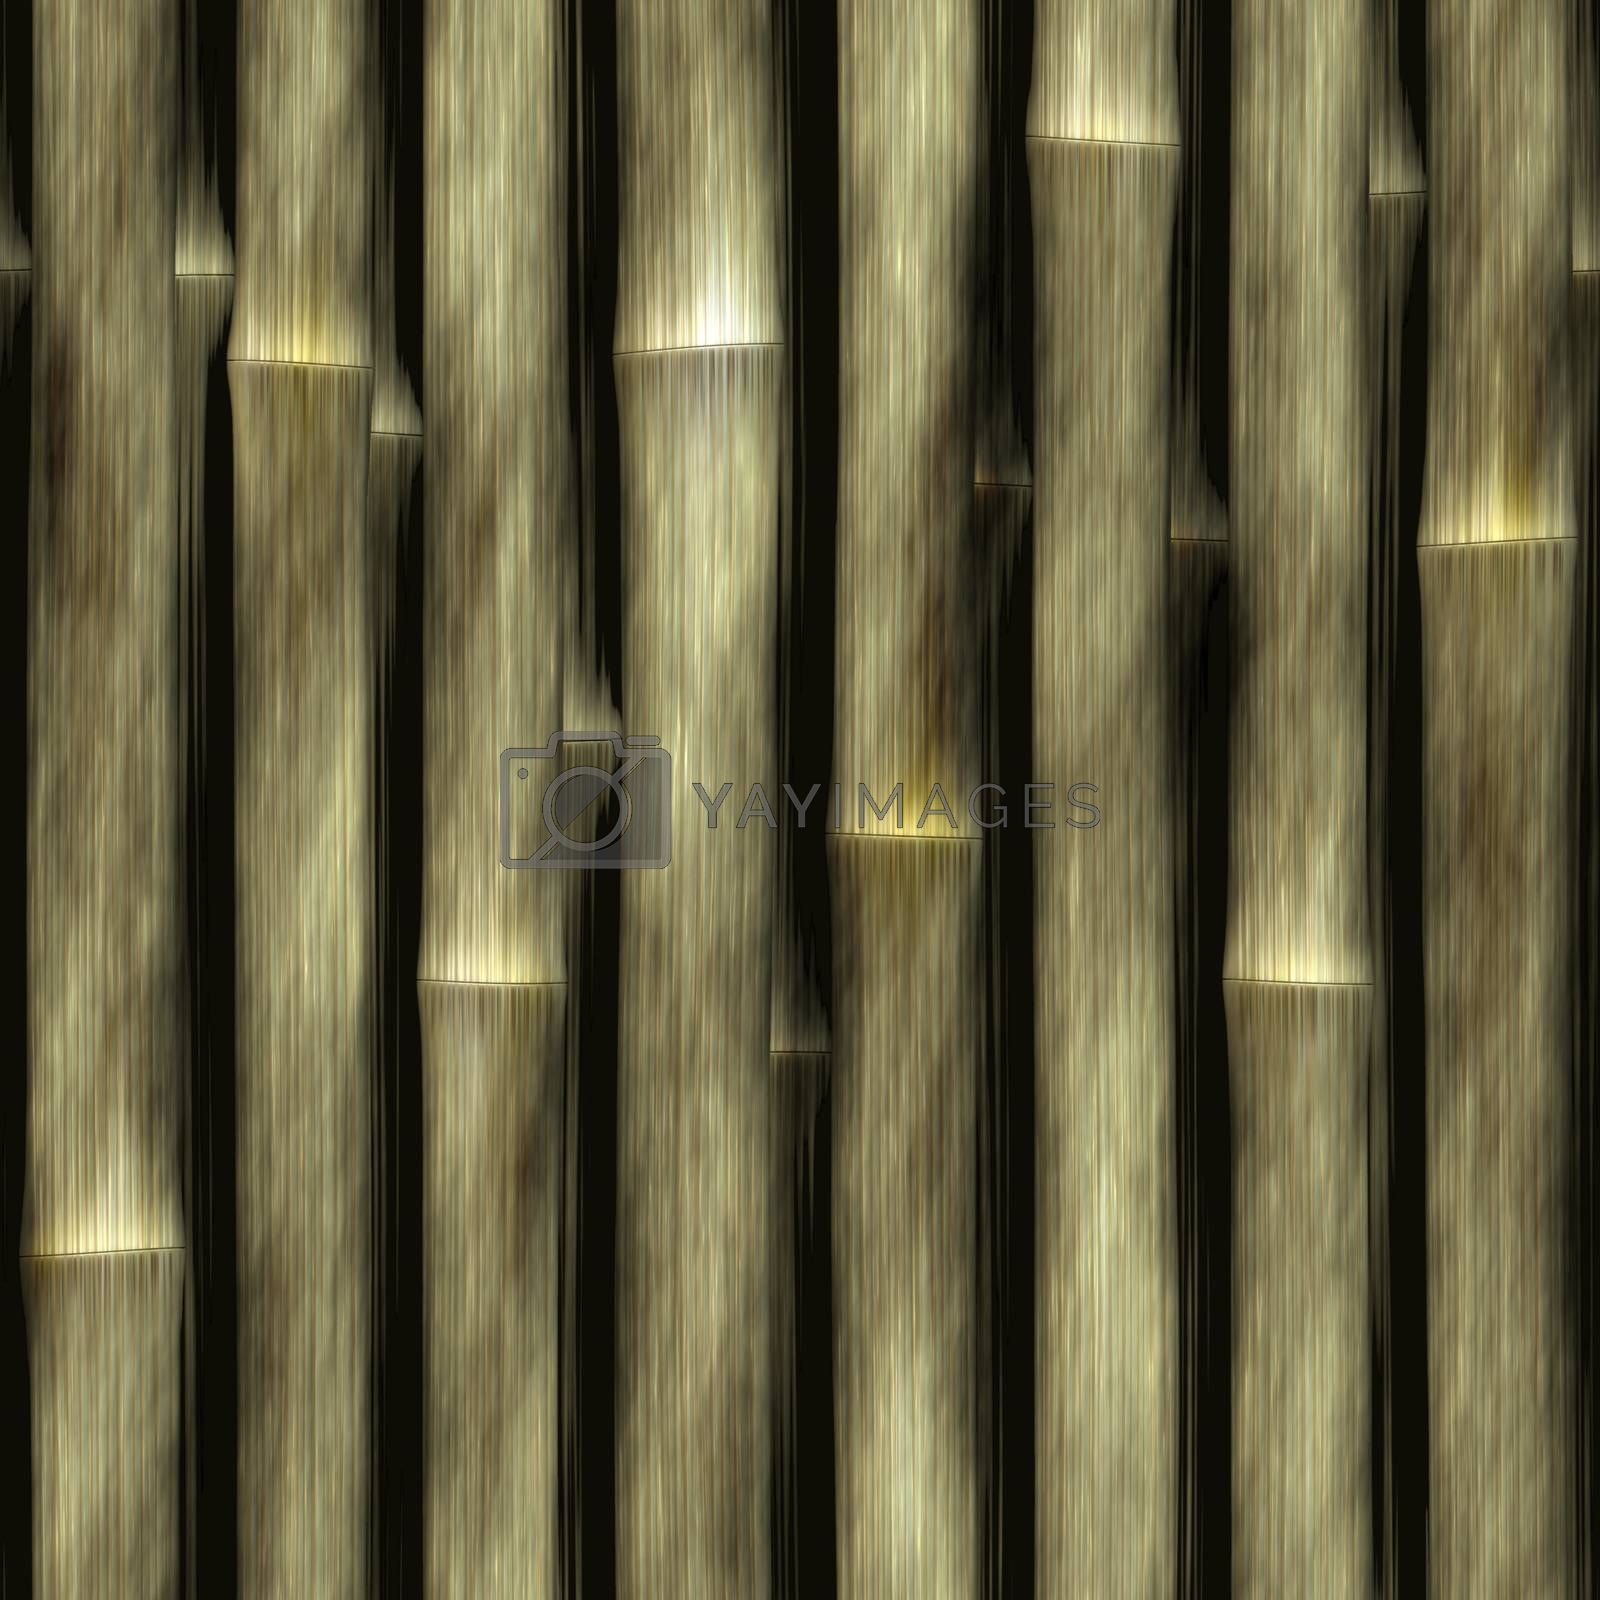 Seamless bamboo poles texture. Tiles as a pattern in any direction.